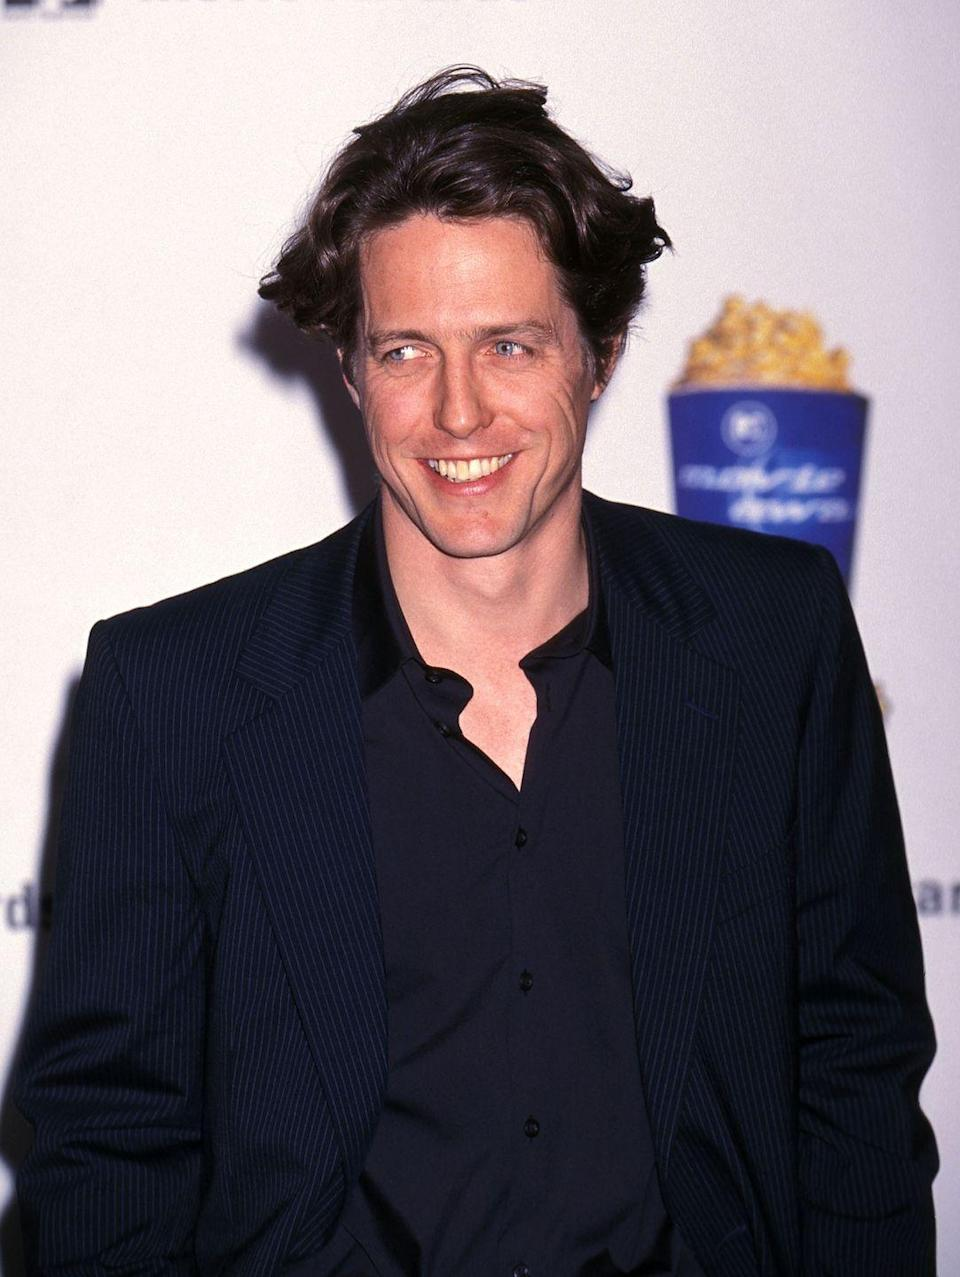 <p>Hugh Grant's floppy brown hair was one of his trademark features during his run as the go-to romantic comedy star in the 1990s.</p>